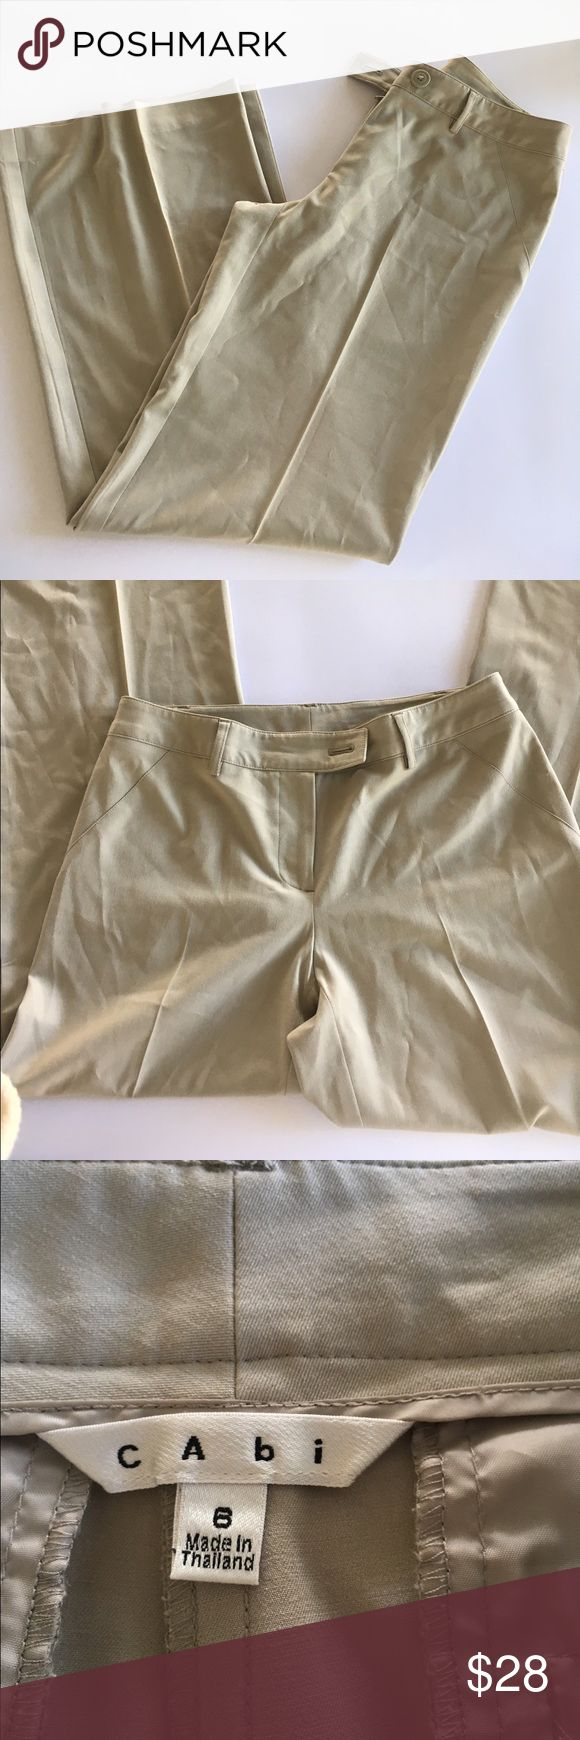 CAbi Dress Slacks Pants Trousers Beige Size 6 #831 These are  wide leg pant. Inseam measures 31 inches material is 63% polyester 33% viscose 4% spandex. CAbi Pants Boot Cut & Flare